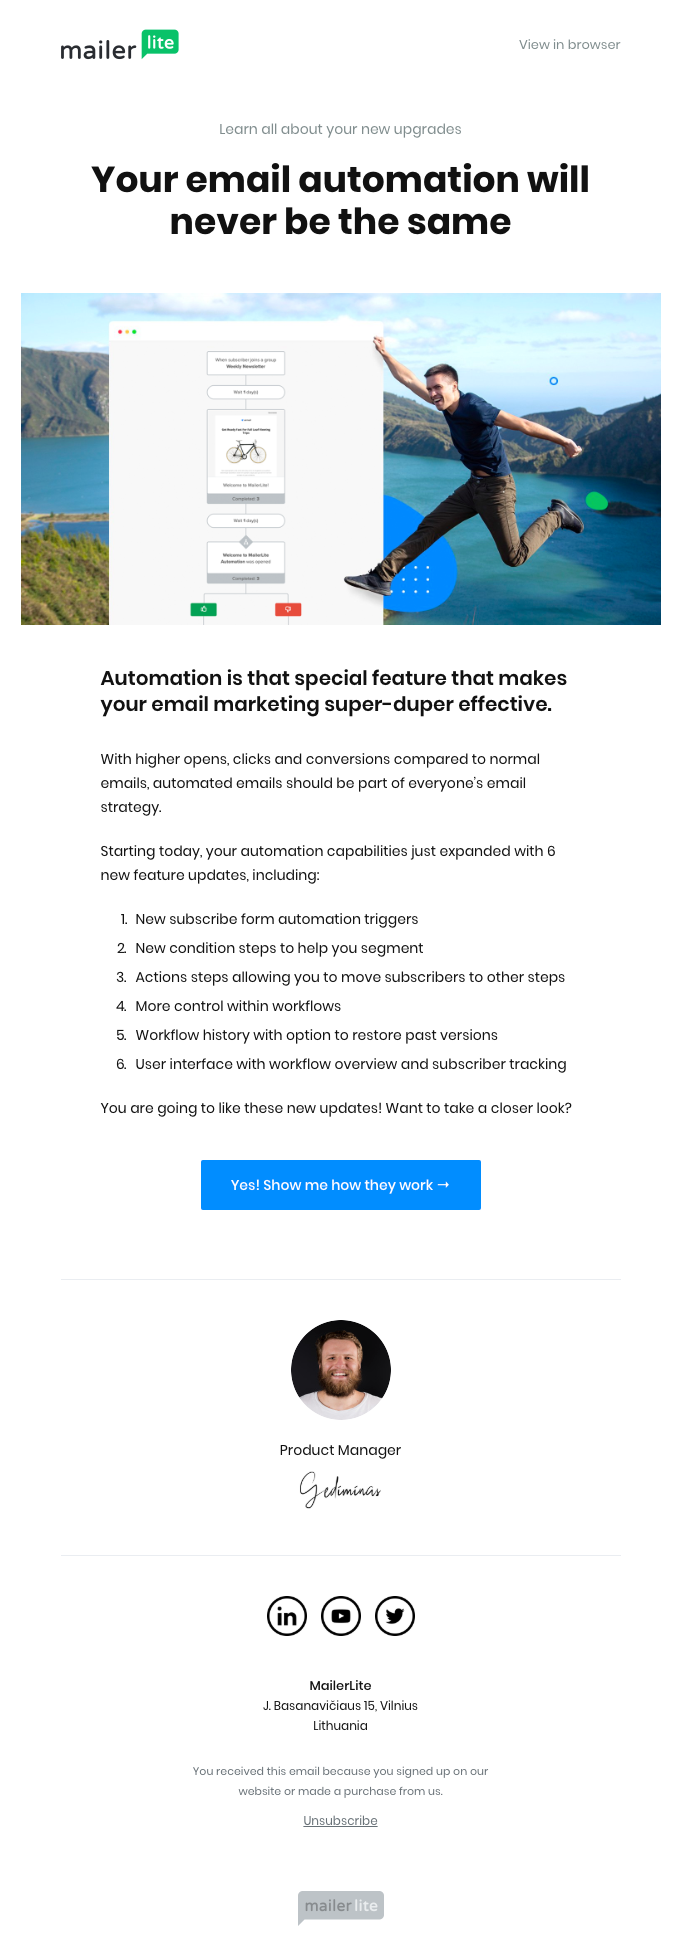 You have 6 new automation upgrades to try today!